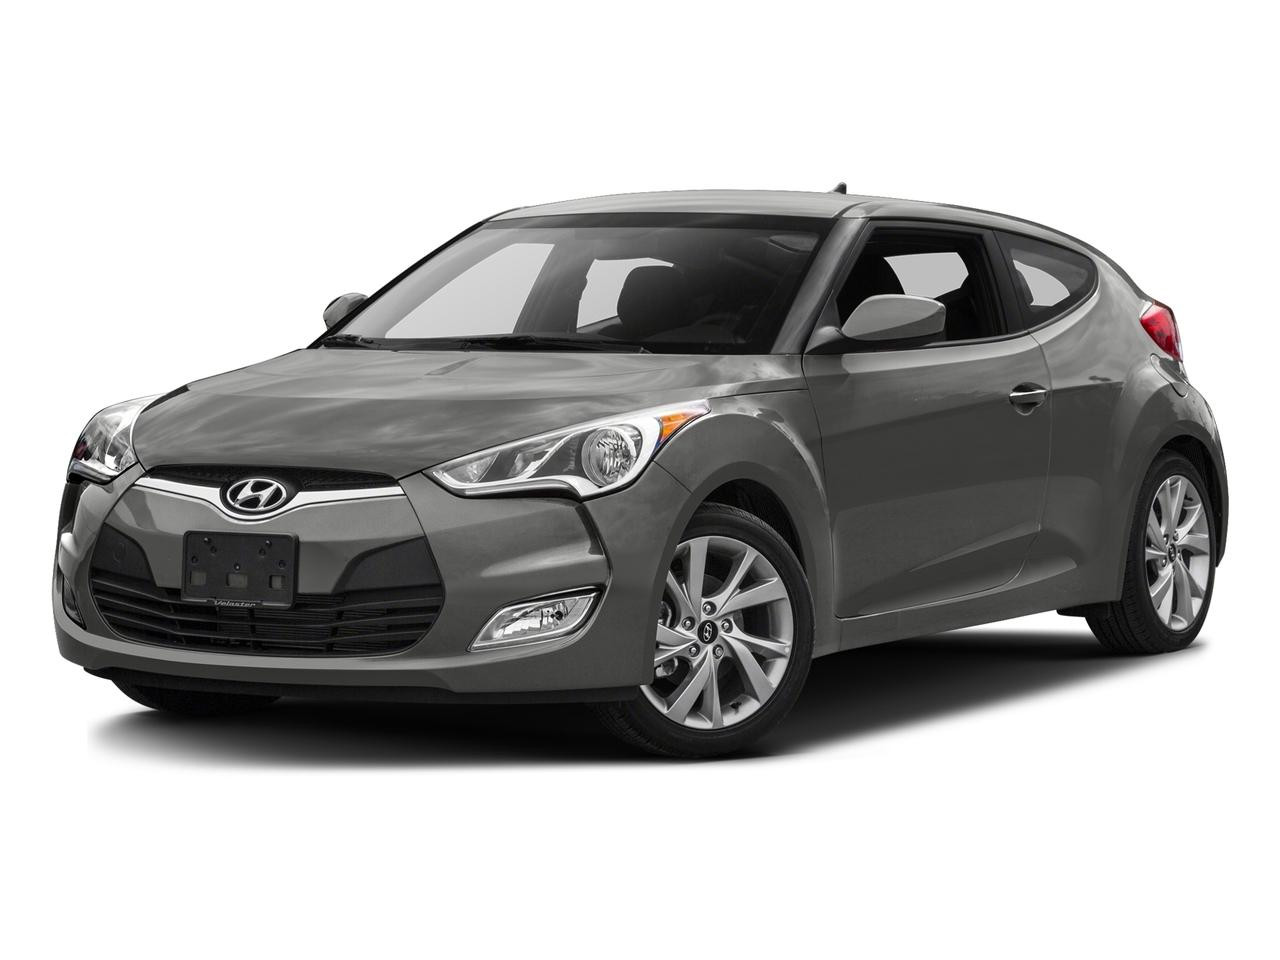 2017 Hyundai Veloster Vehicle Photo in Portland, OR 97225